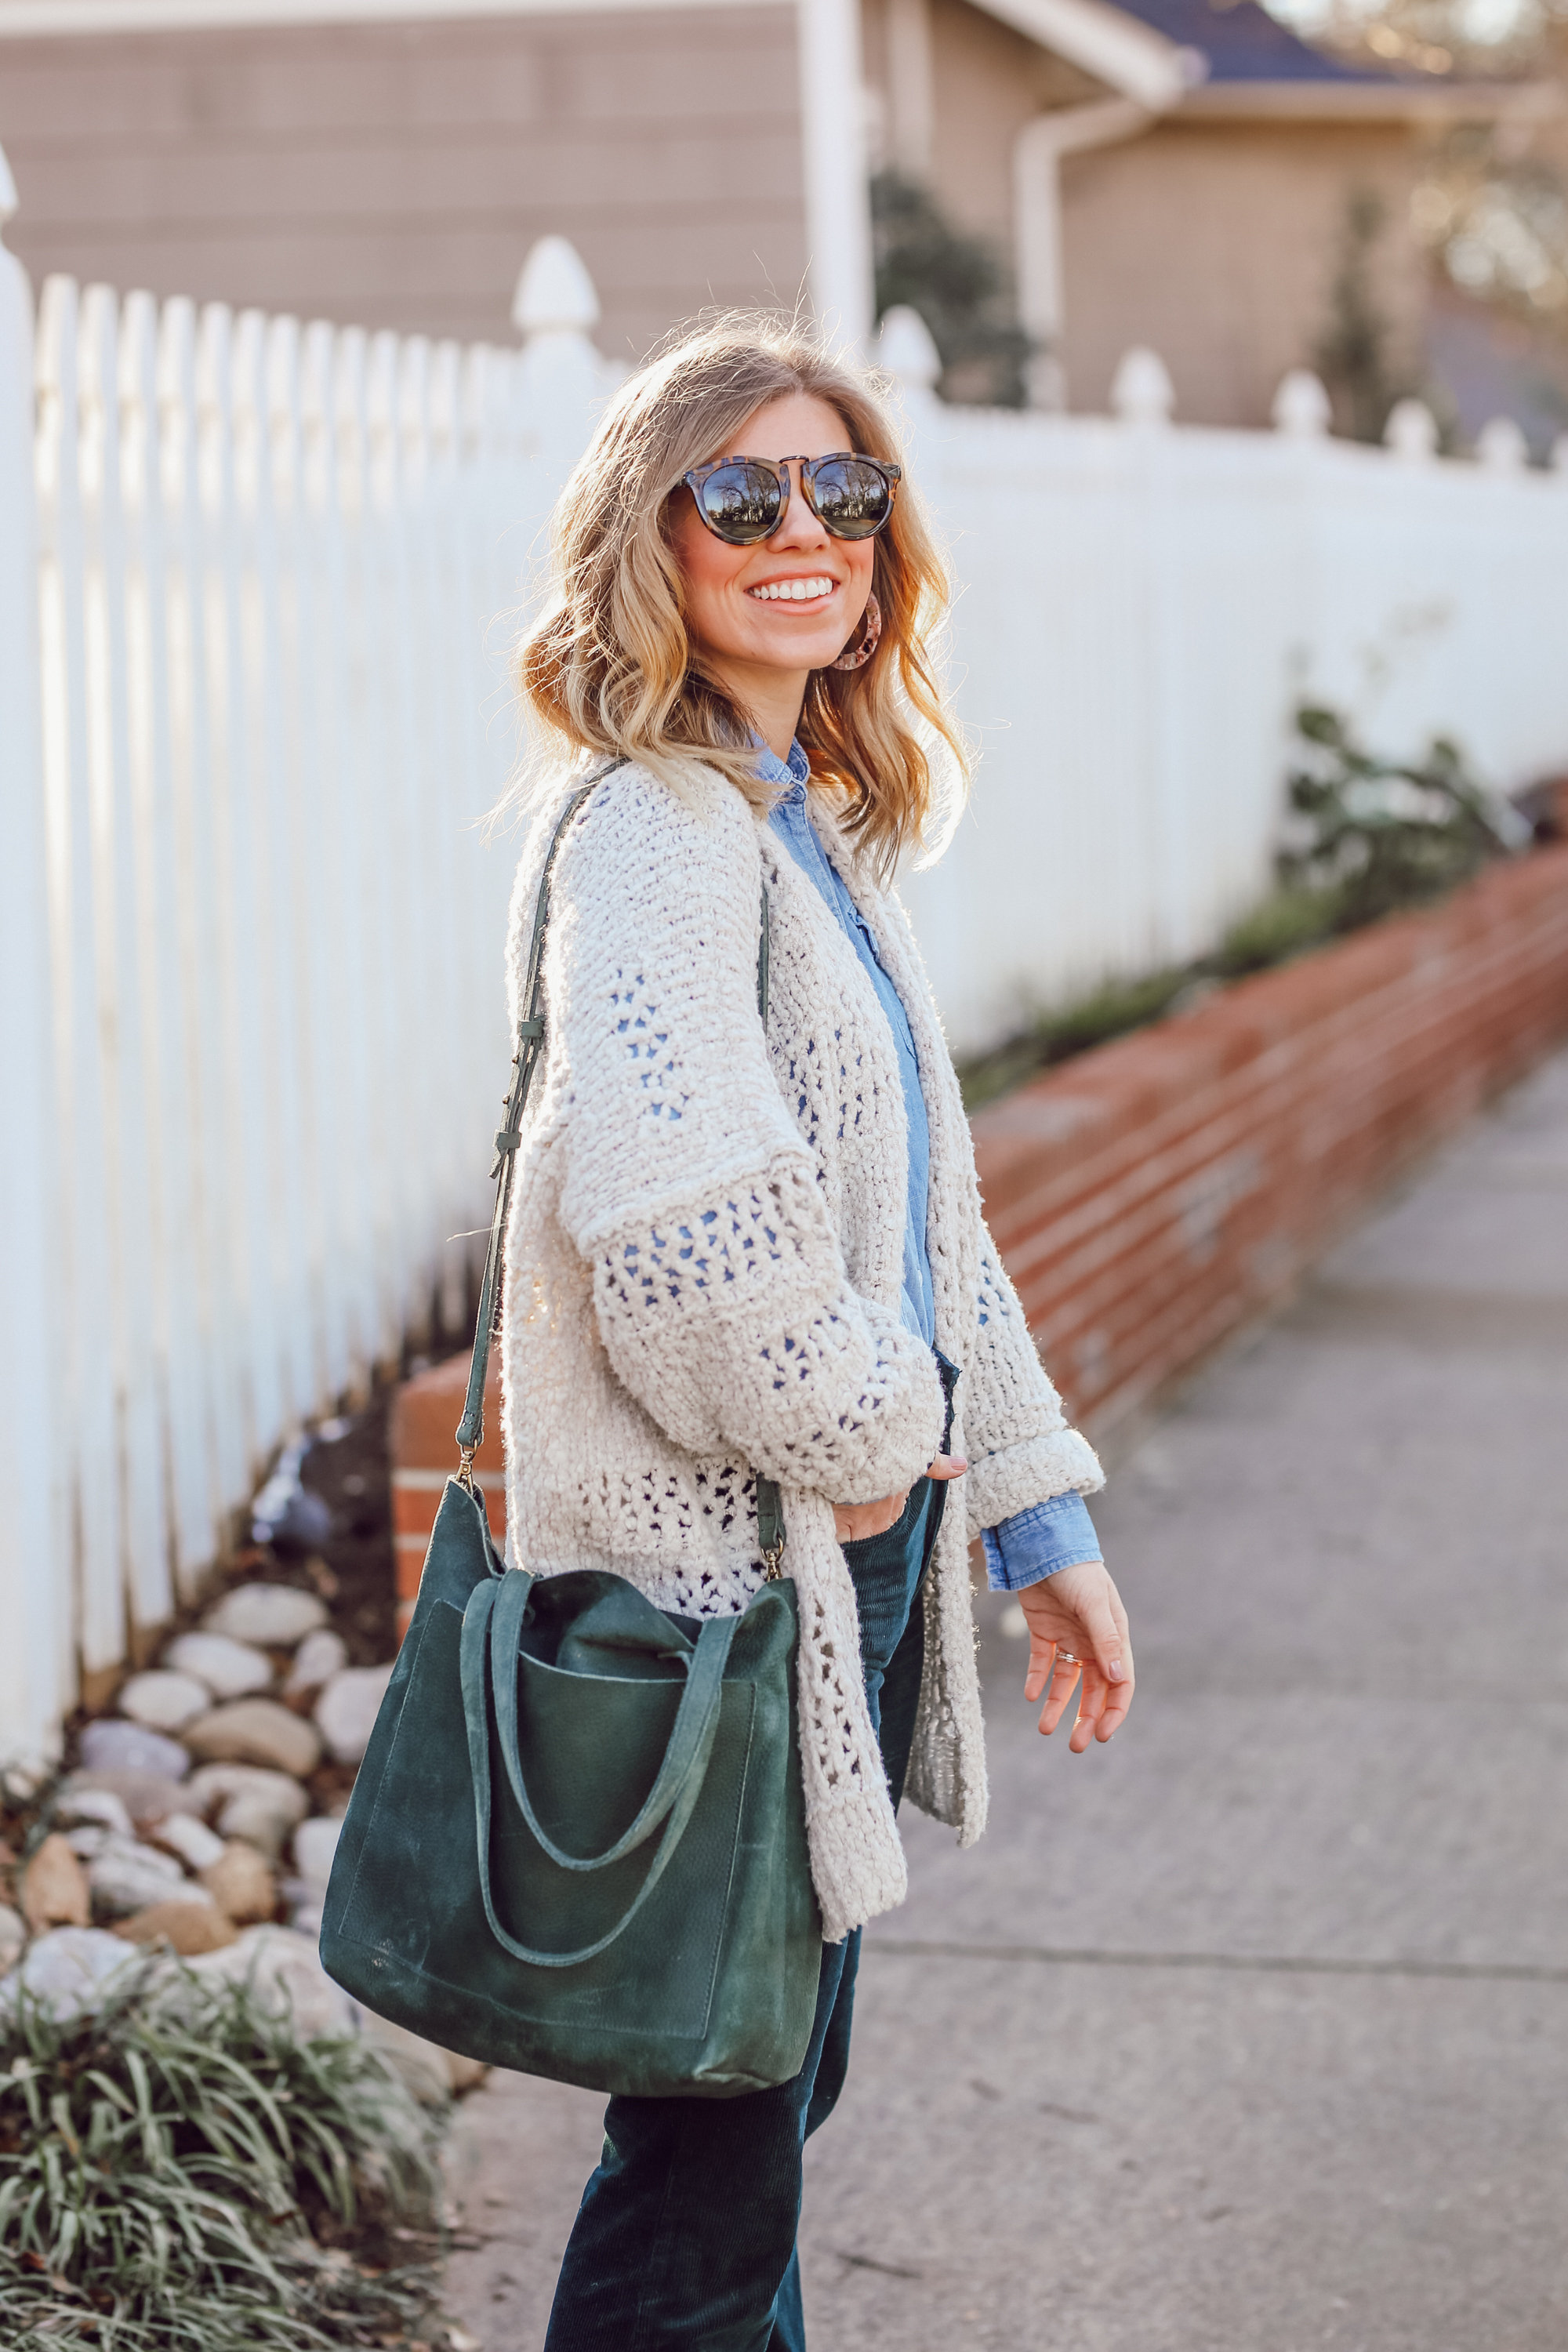 How to Pull off the 70s Trend in 2019 | Madewell Suede Transport Tote | Louella Reese